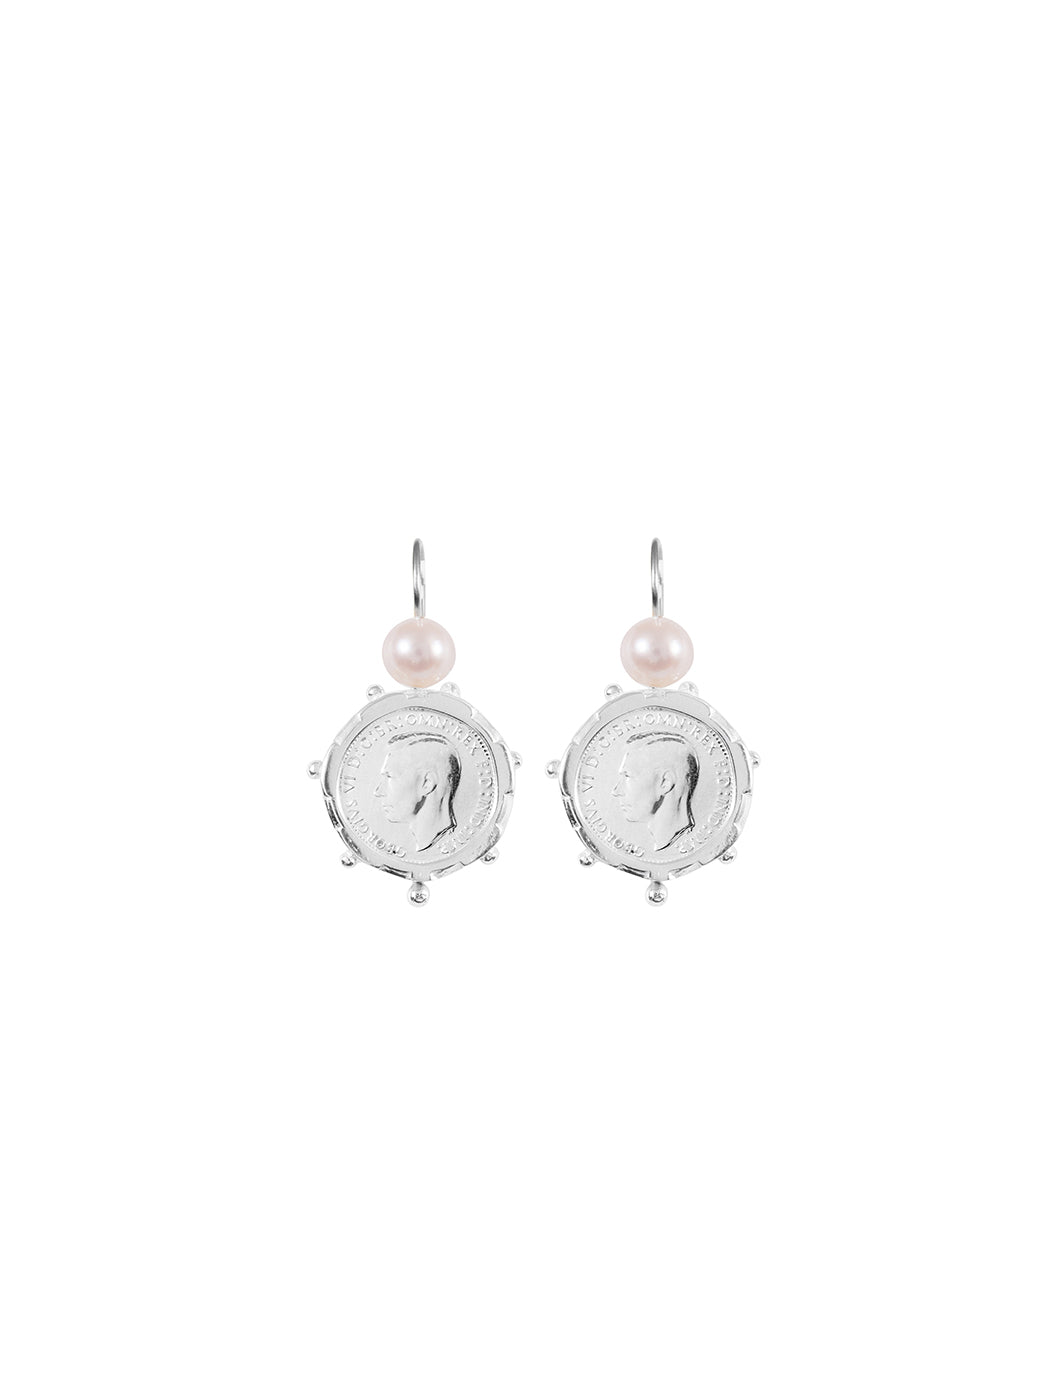 Fiorina Jewellery Silver Encased 3P Coin Earrings Pearl Highlights